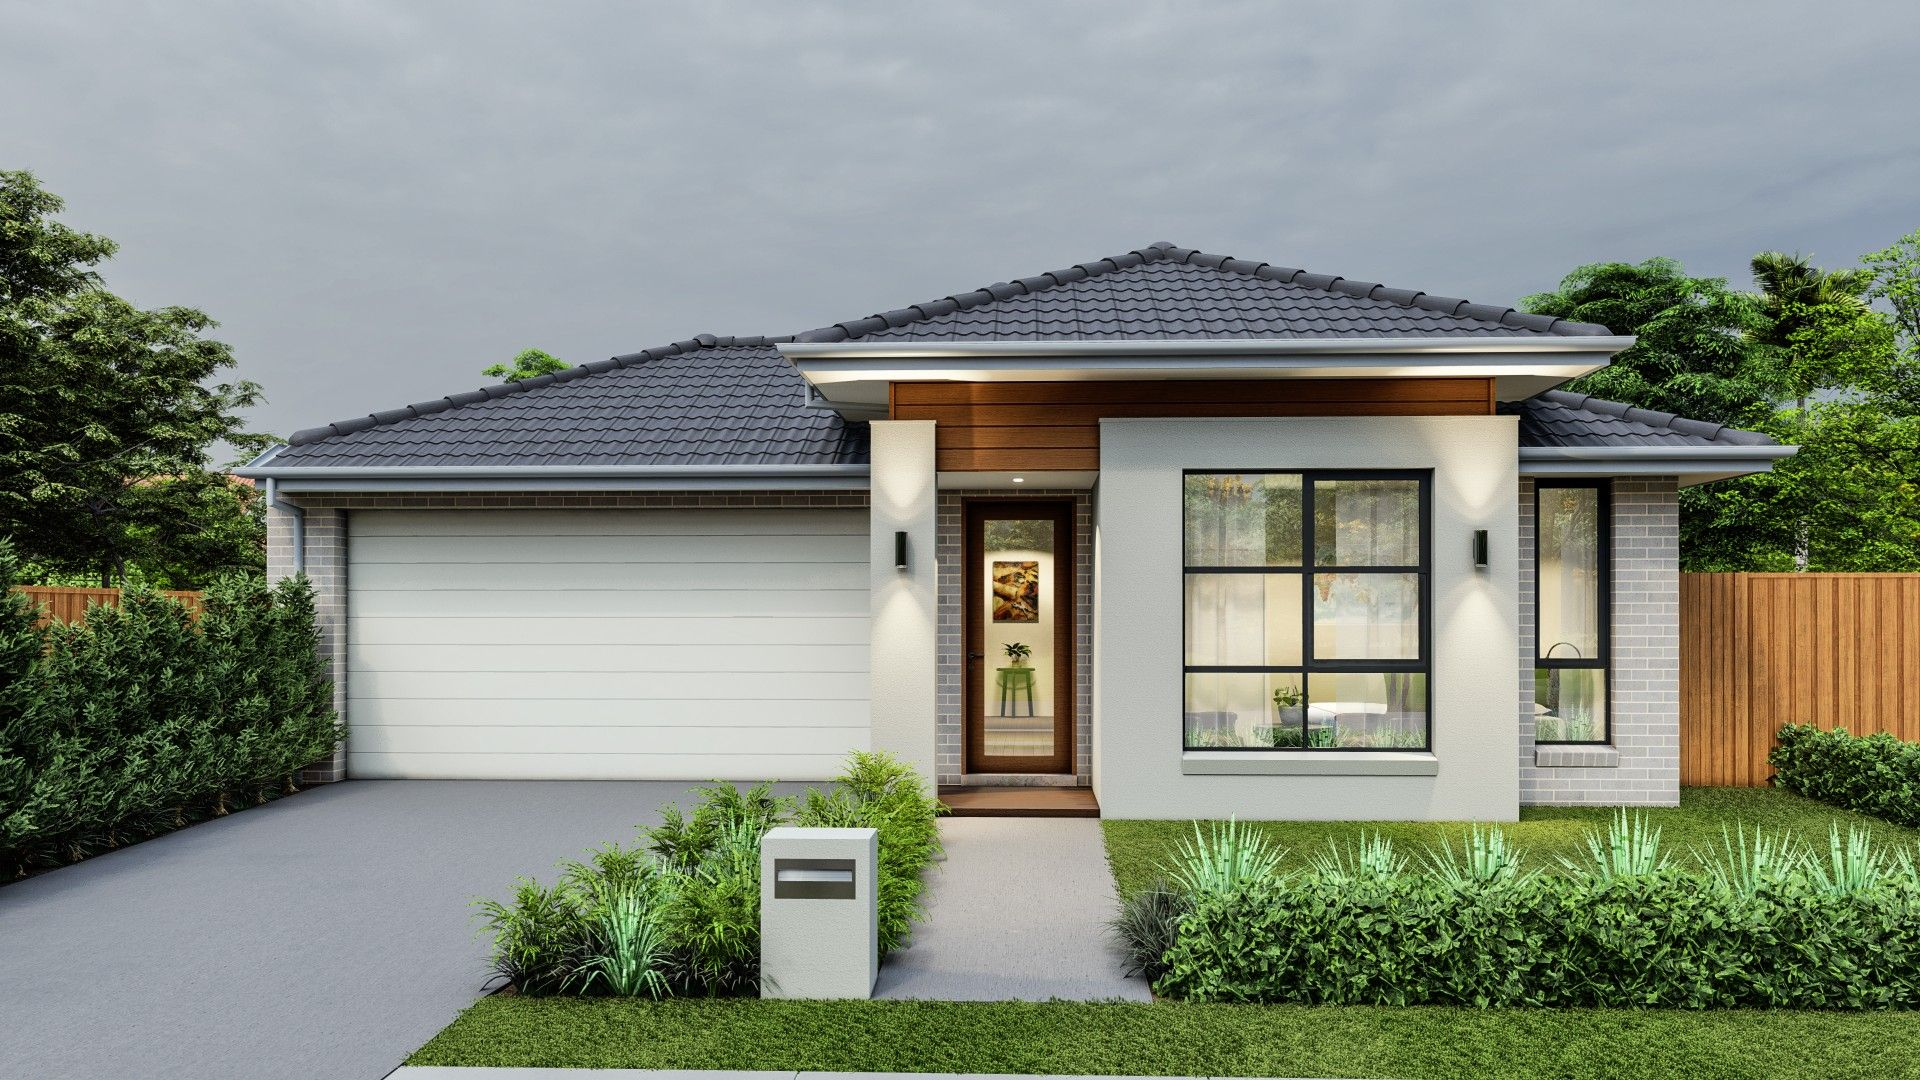 Lot 18/41 Terry Rd, Box Hill NSW 2765, Image 0